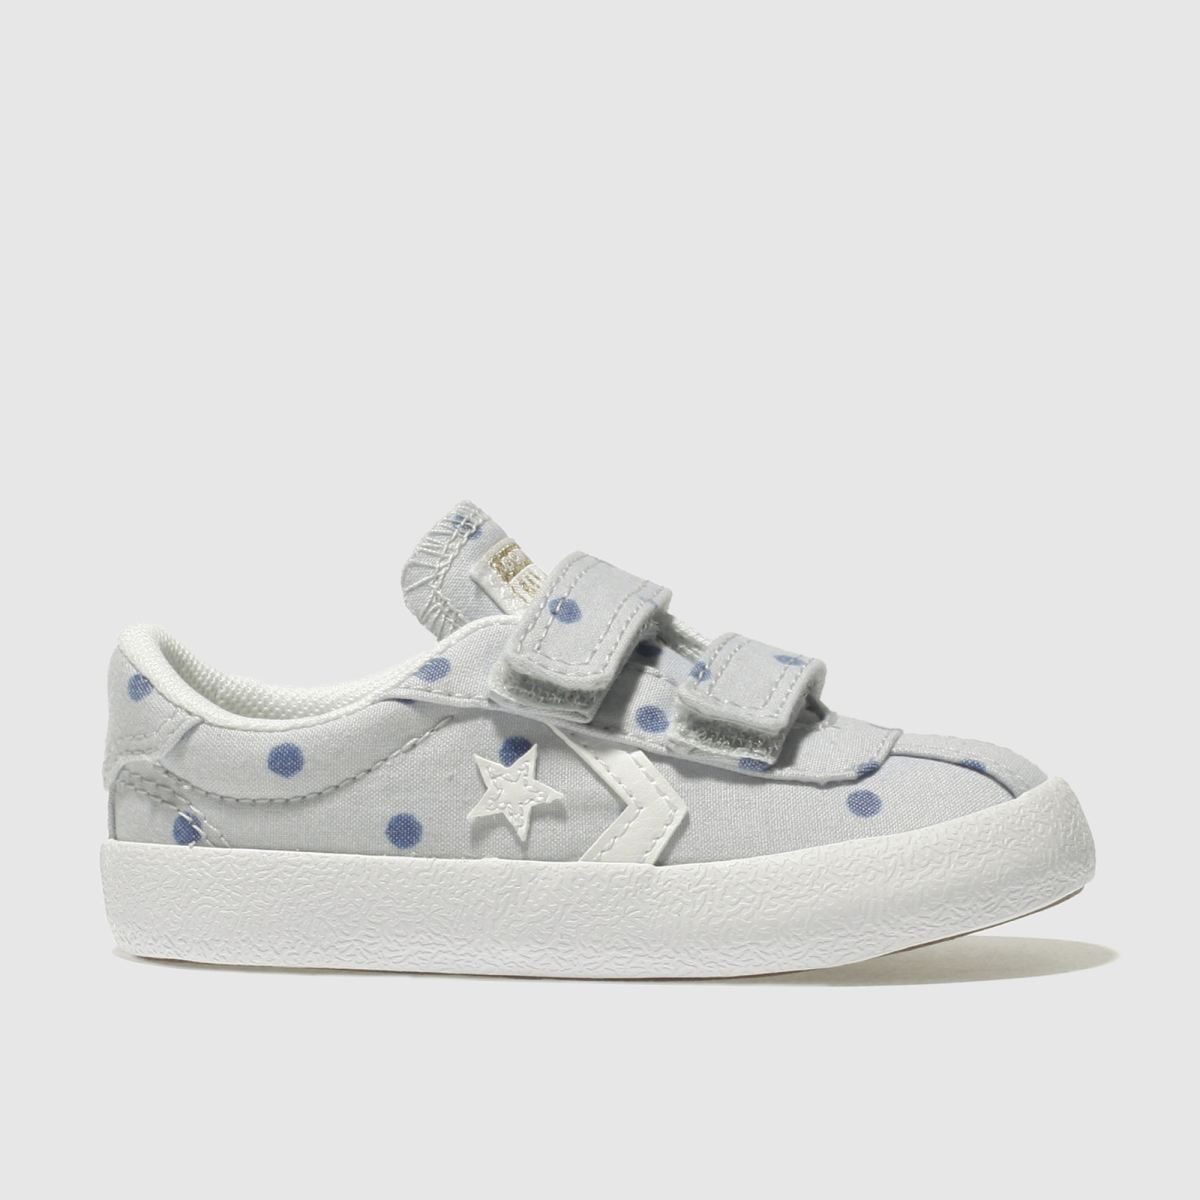 Converse Light Grey Breakpoint 2v Girls Toddler Trainers